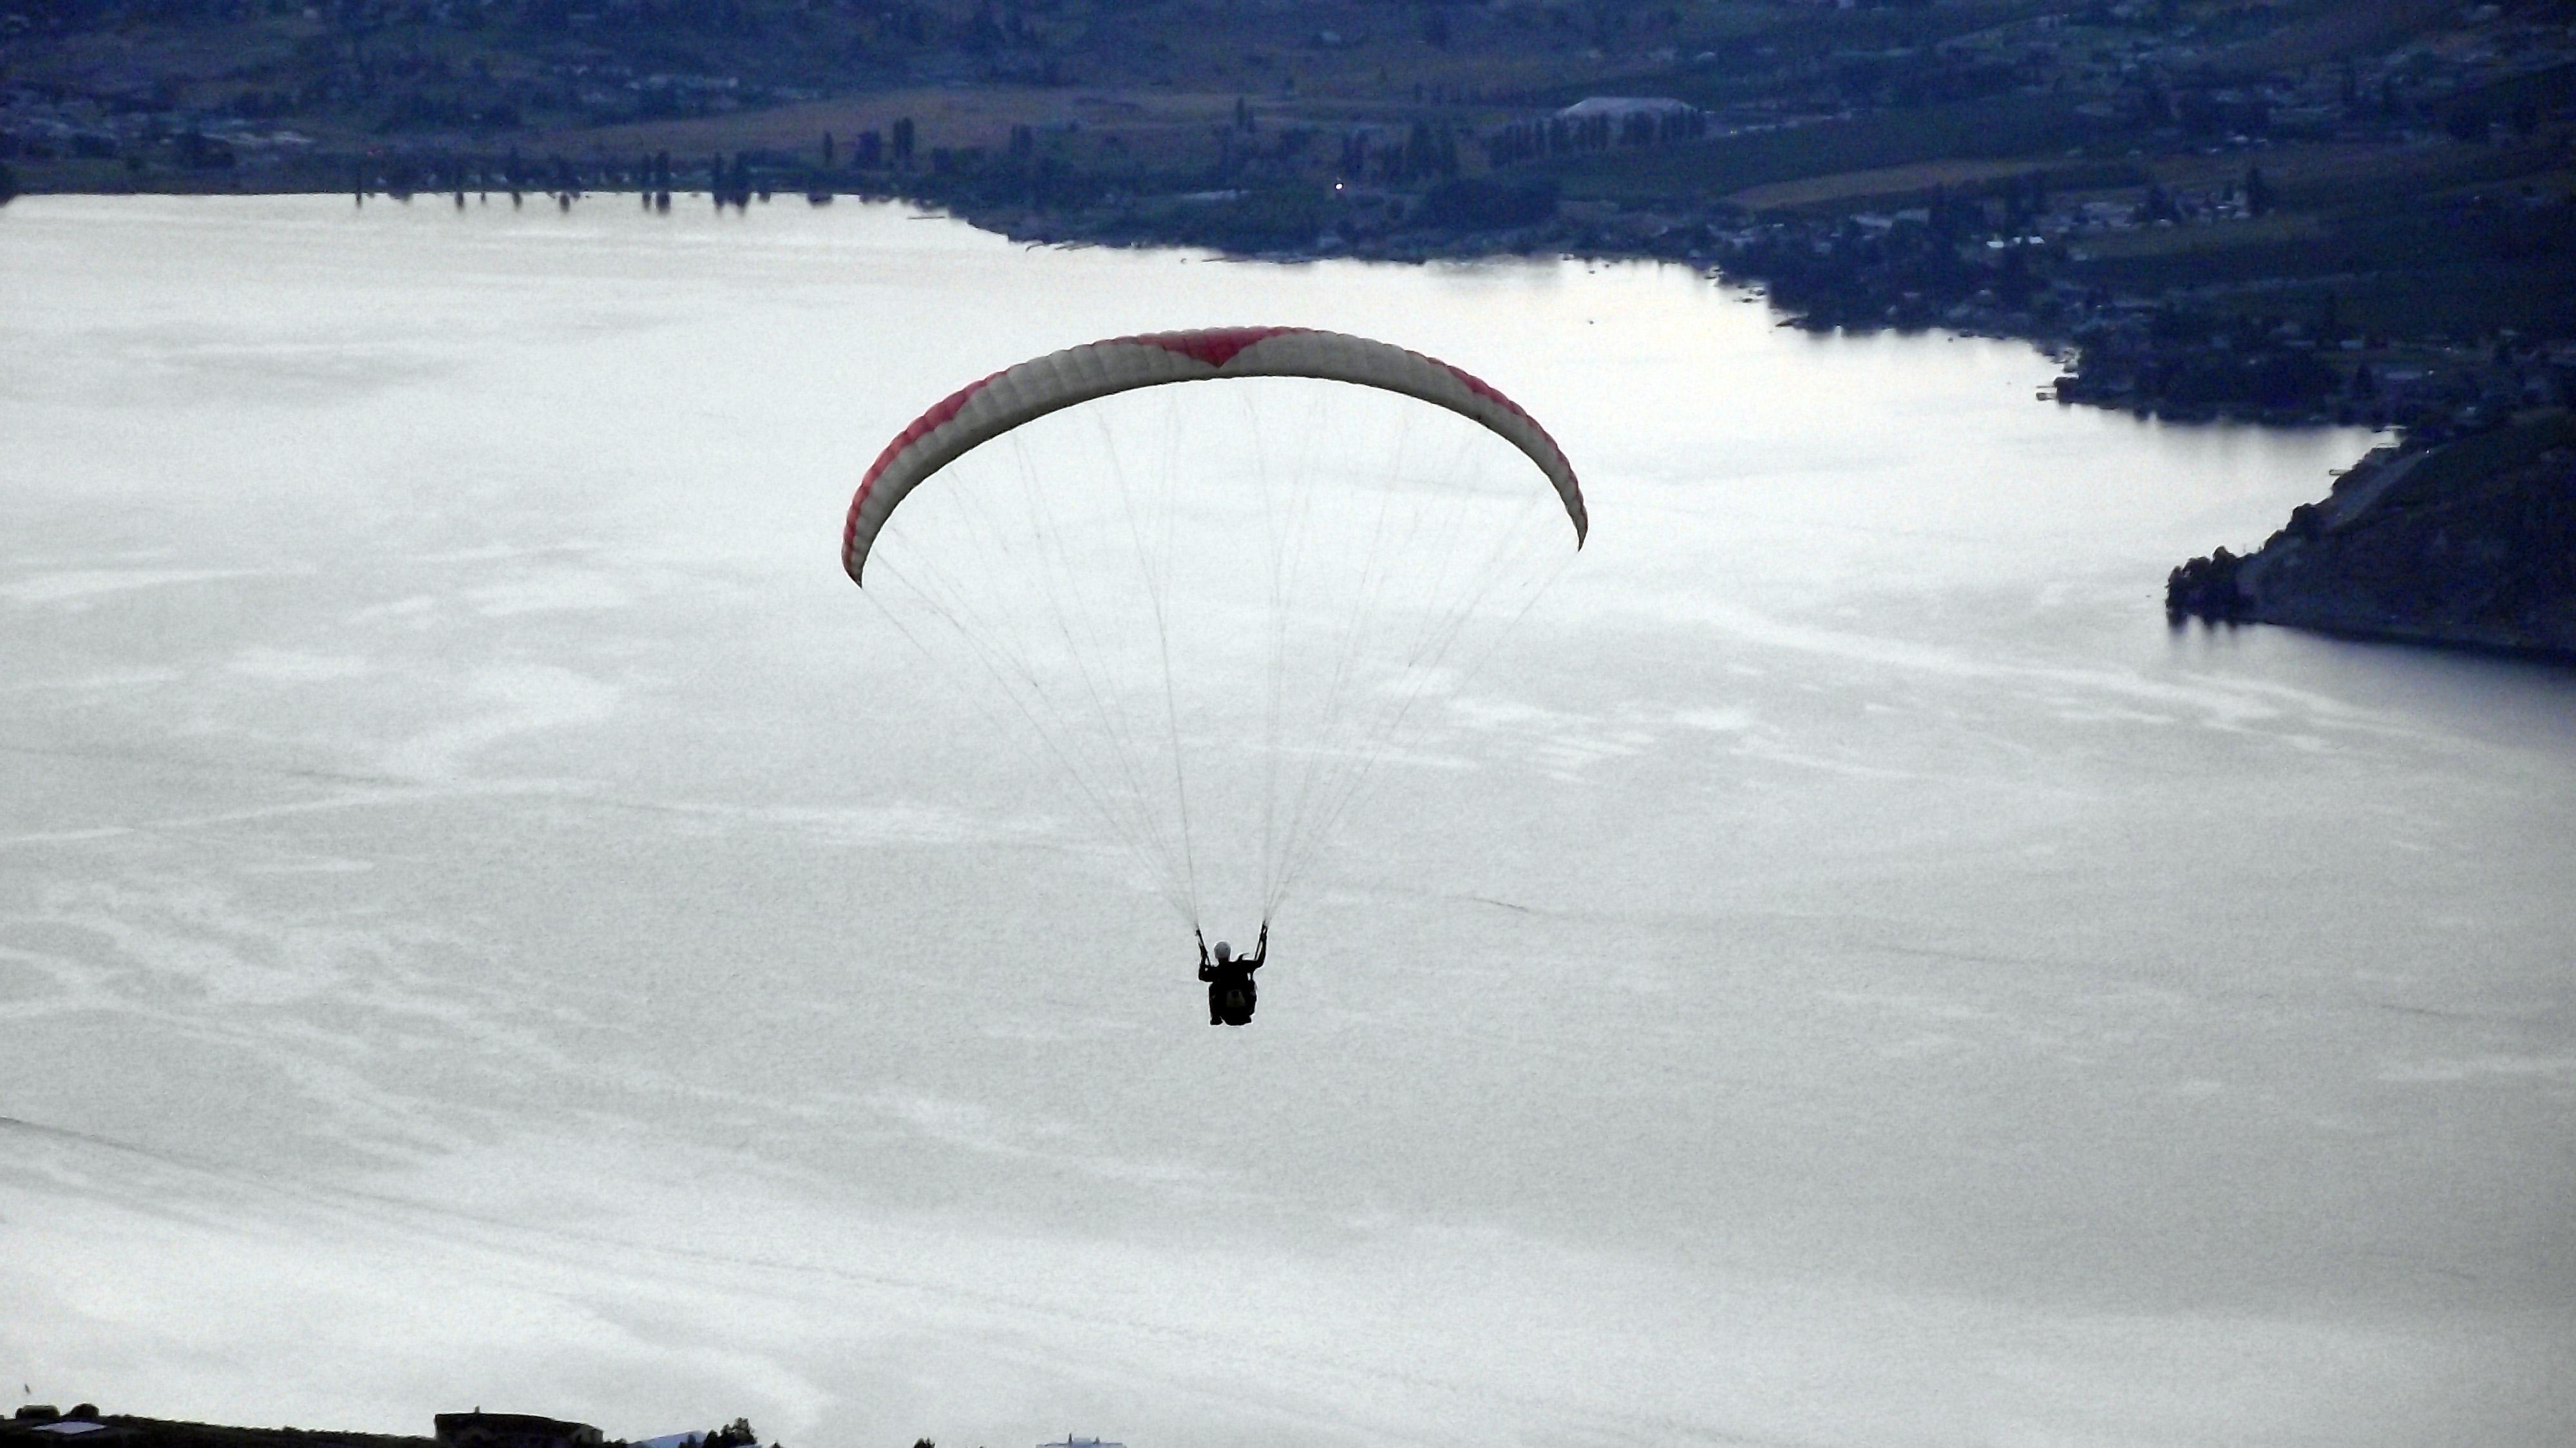 Paraglider pilot killed after crashing onto highway east of Chelan